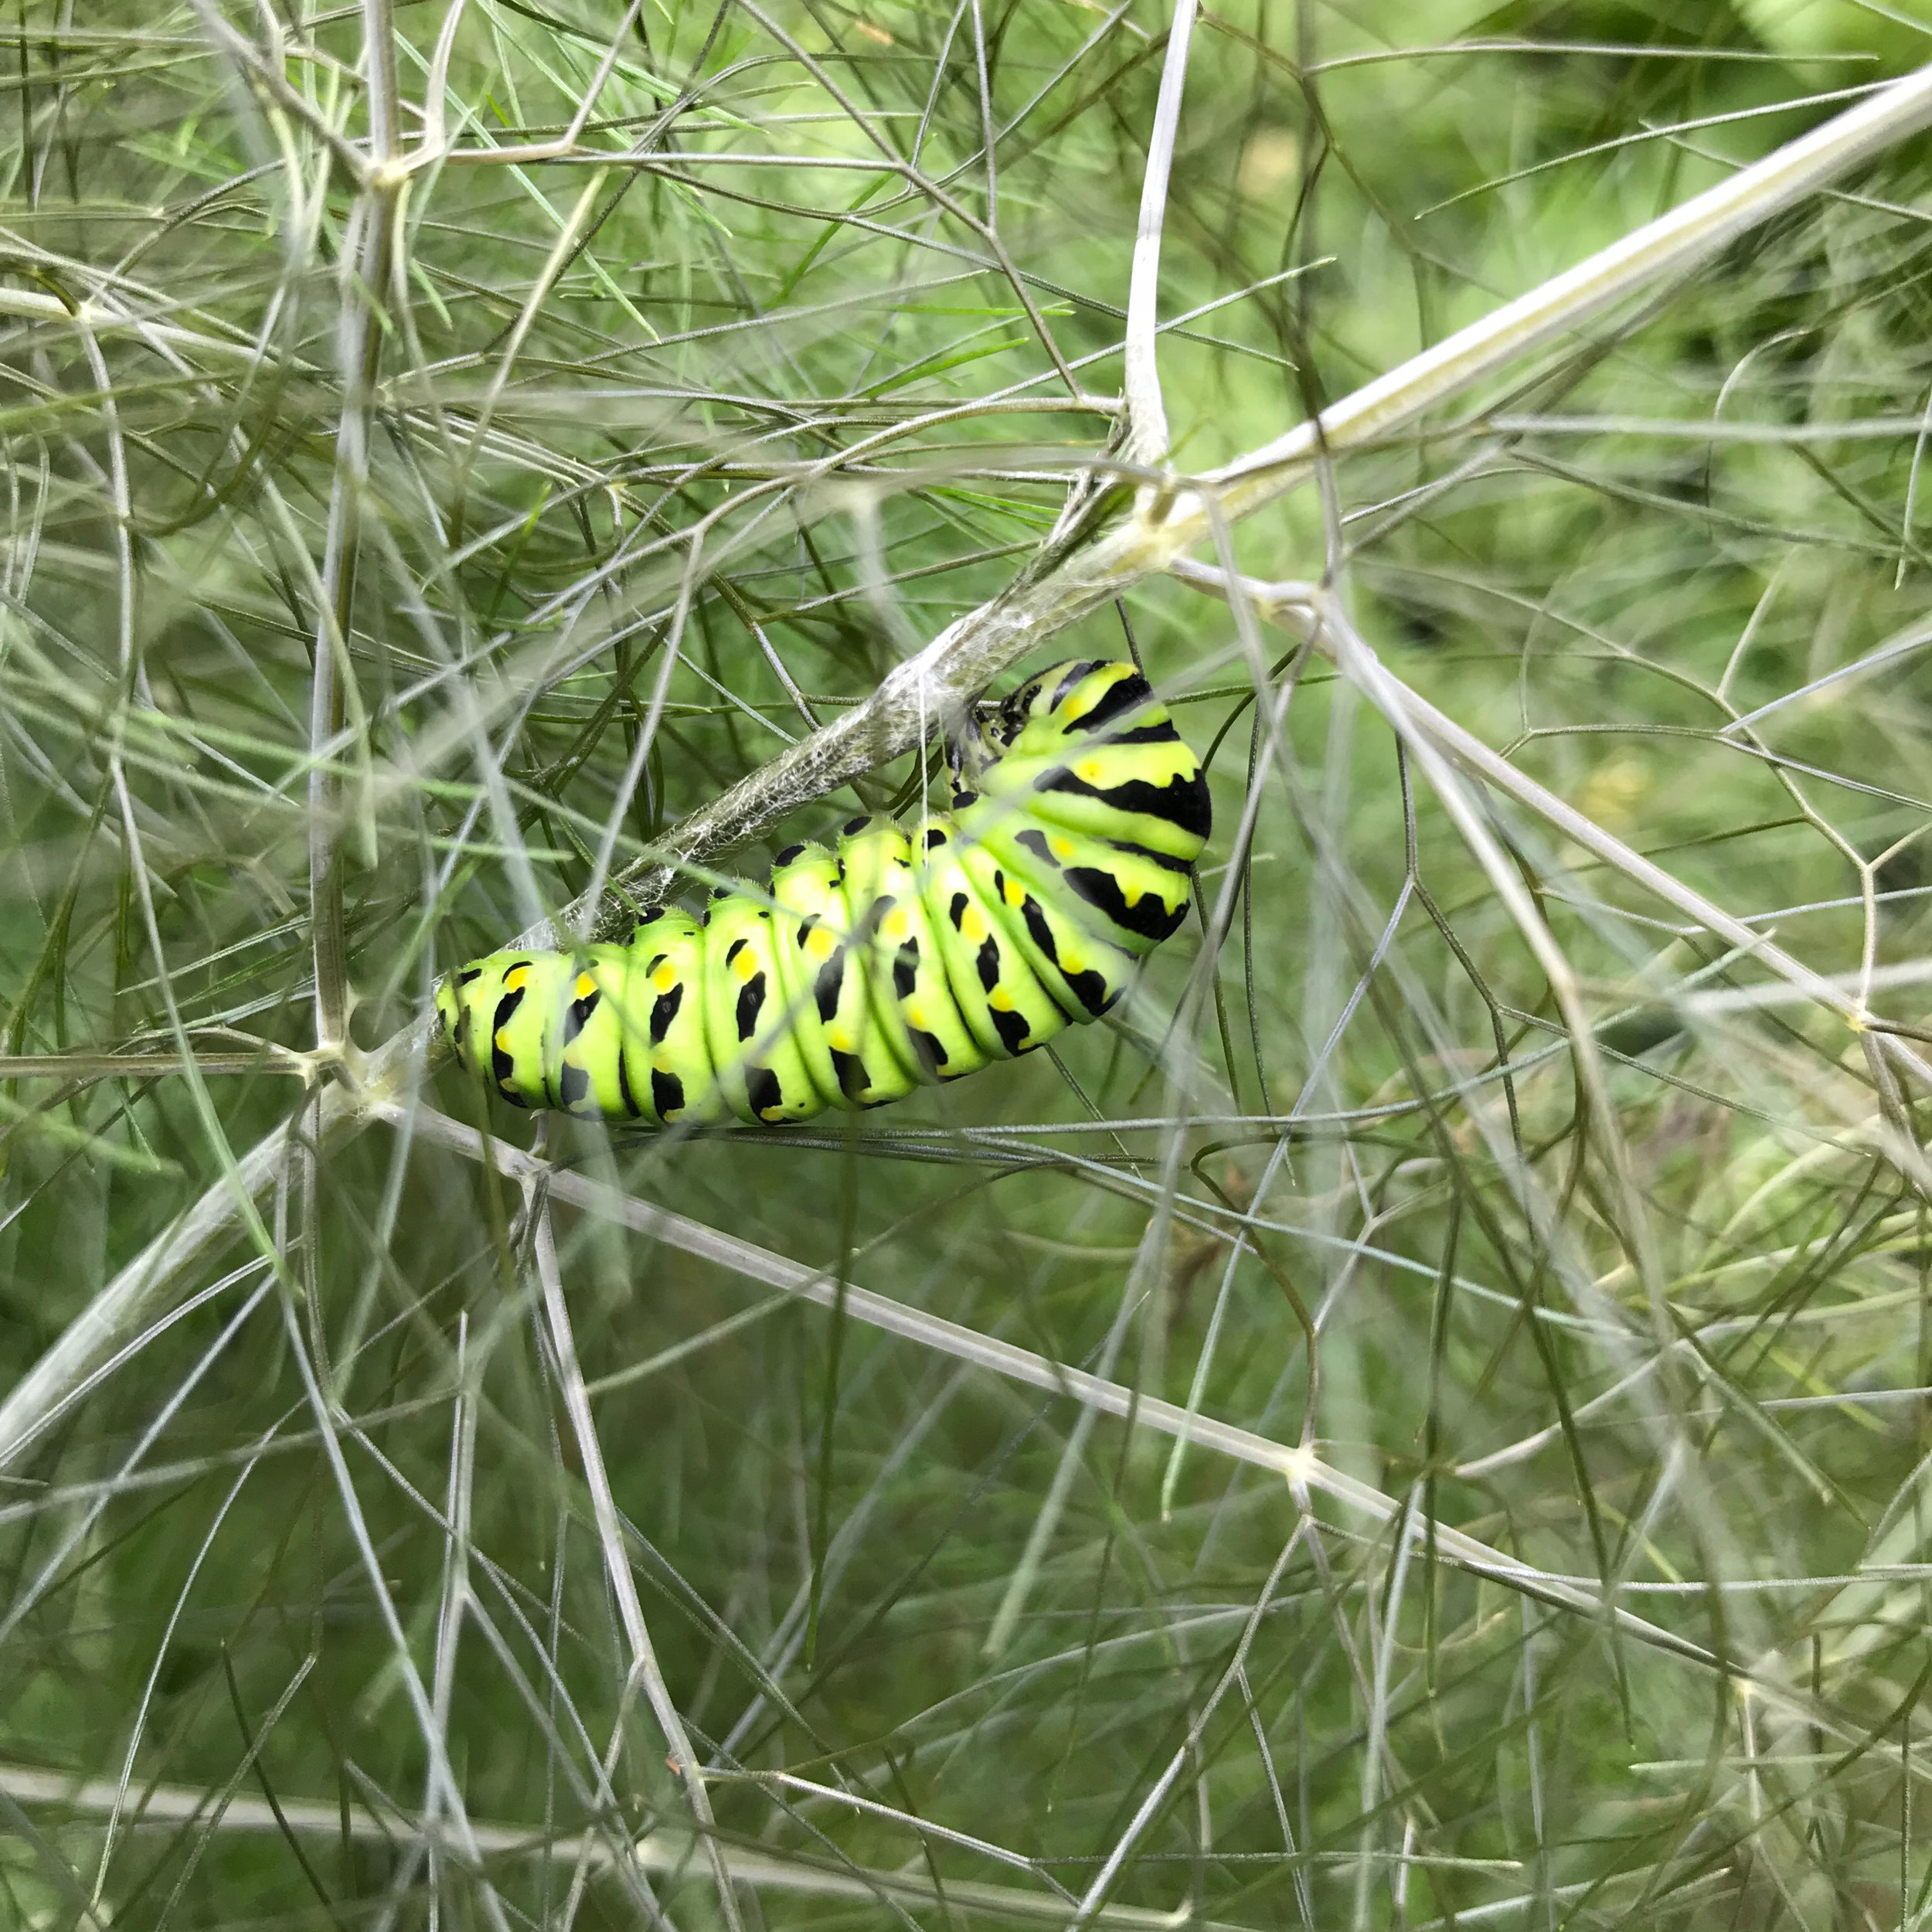 A Black Swallowtail Caterpillar on the Fennel in My Garden Preparing to Pupate